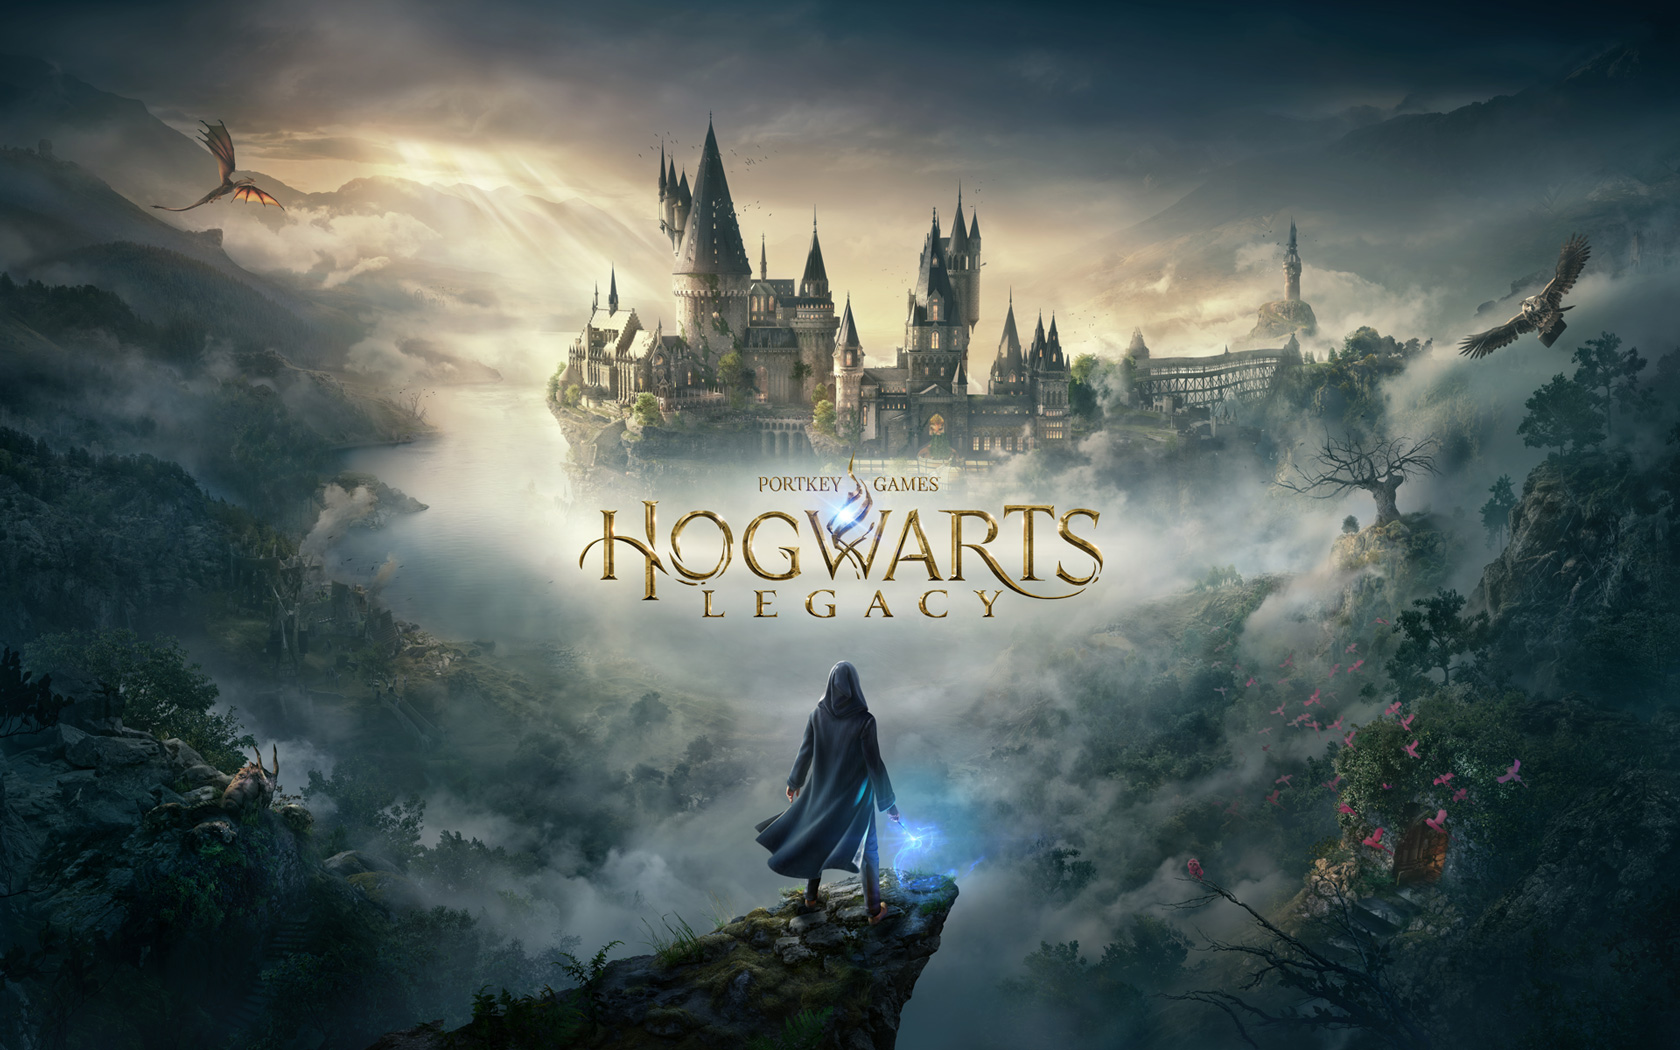 Free Hogwarts Legacy Wallpaper in 1680x1050